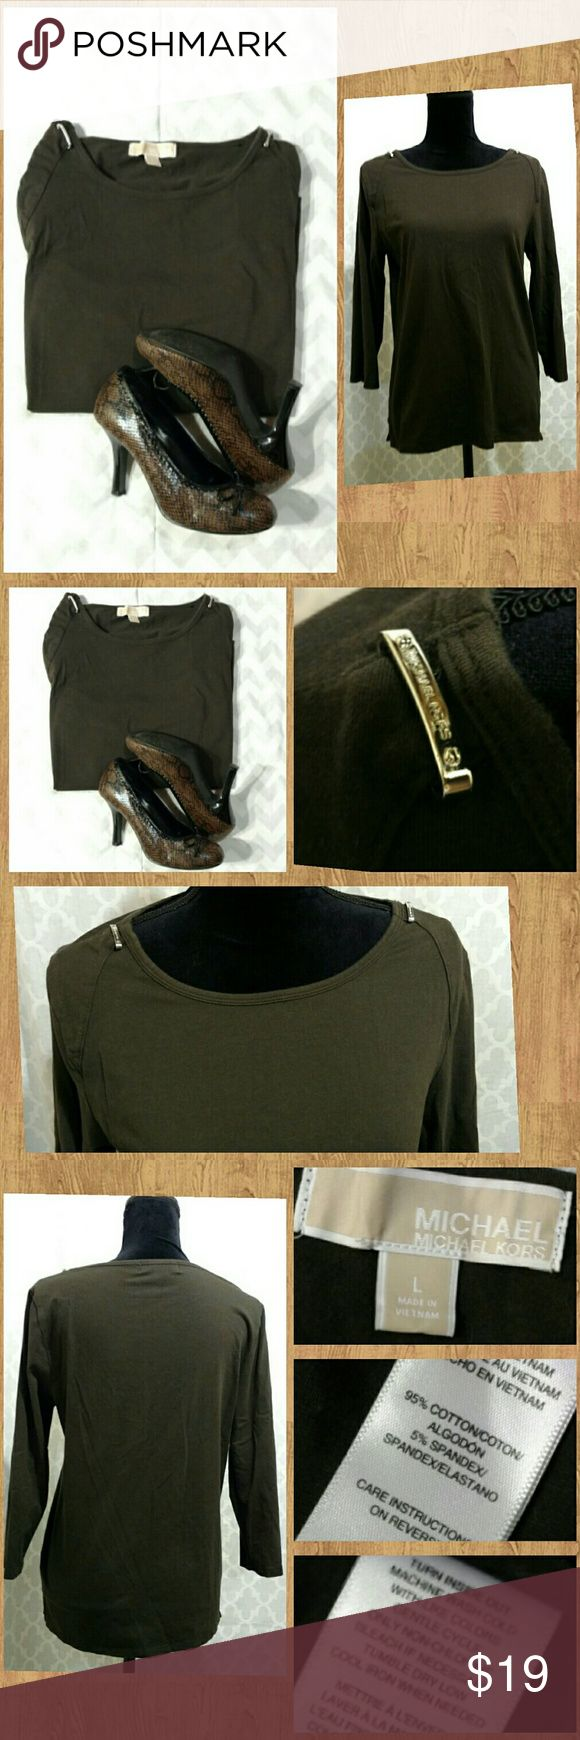 Michael Kors: Brown Long-sleeve Shirt Brown long-sleeved top with decorative shoulder ornaments. Very good condition; only worn about twice.   Discount available with bundle purchase. Michael Kors Tops Tees - Long Sleeve